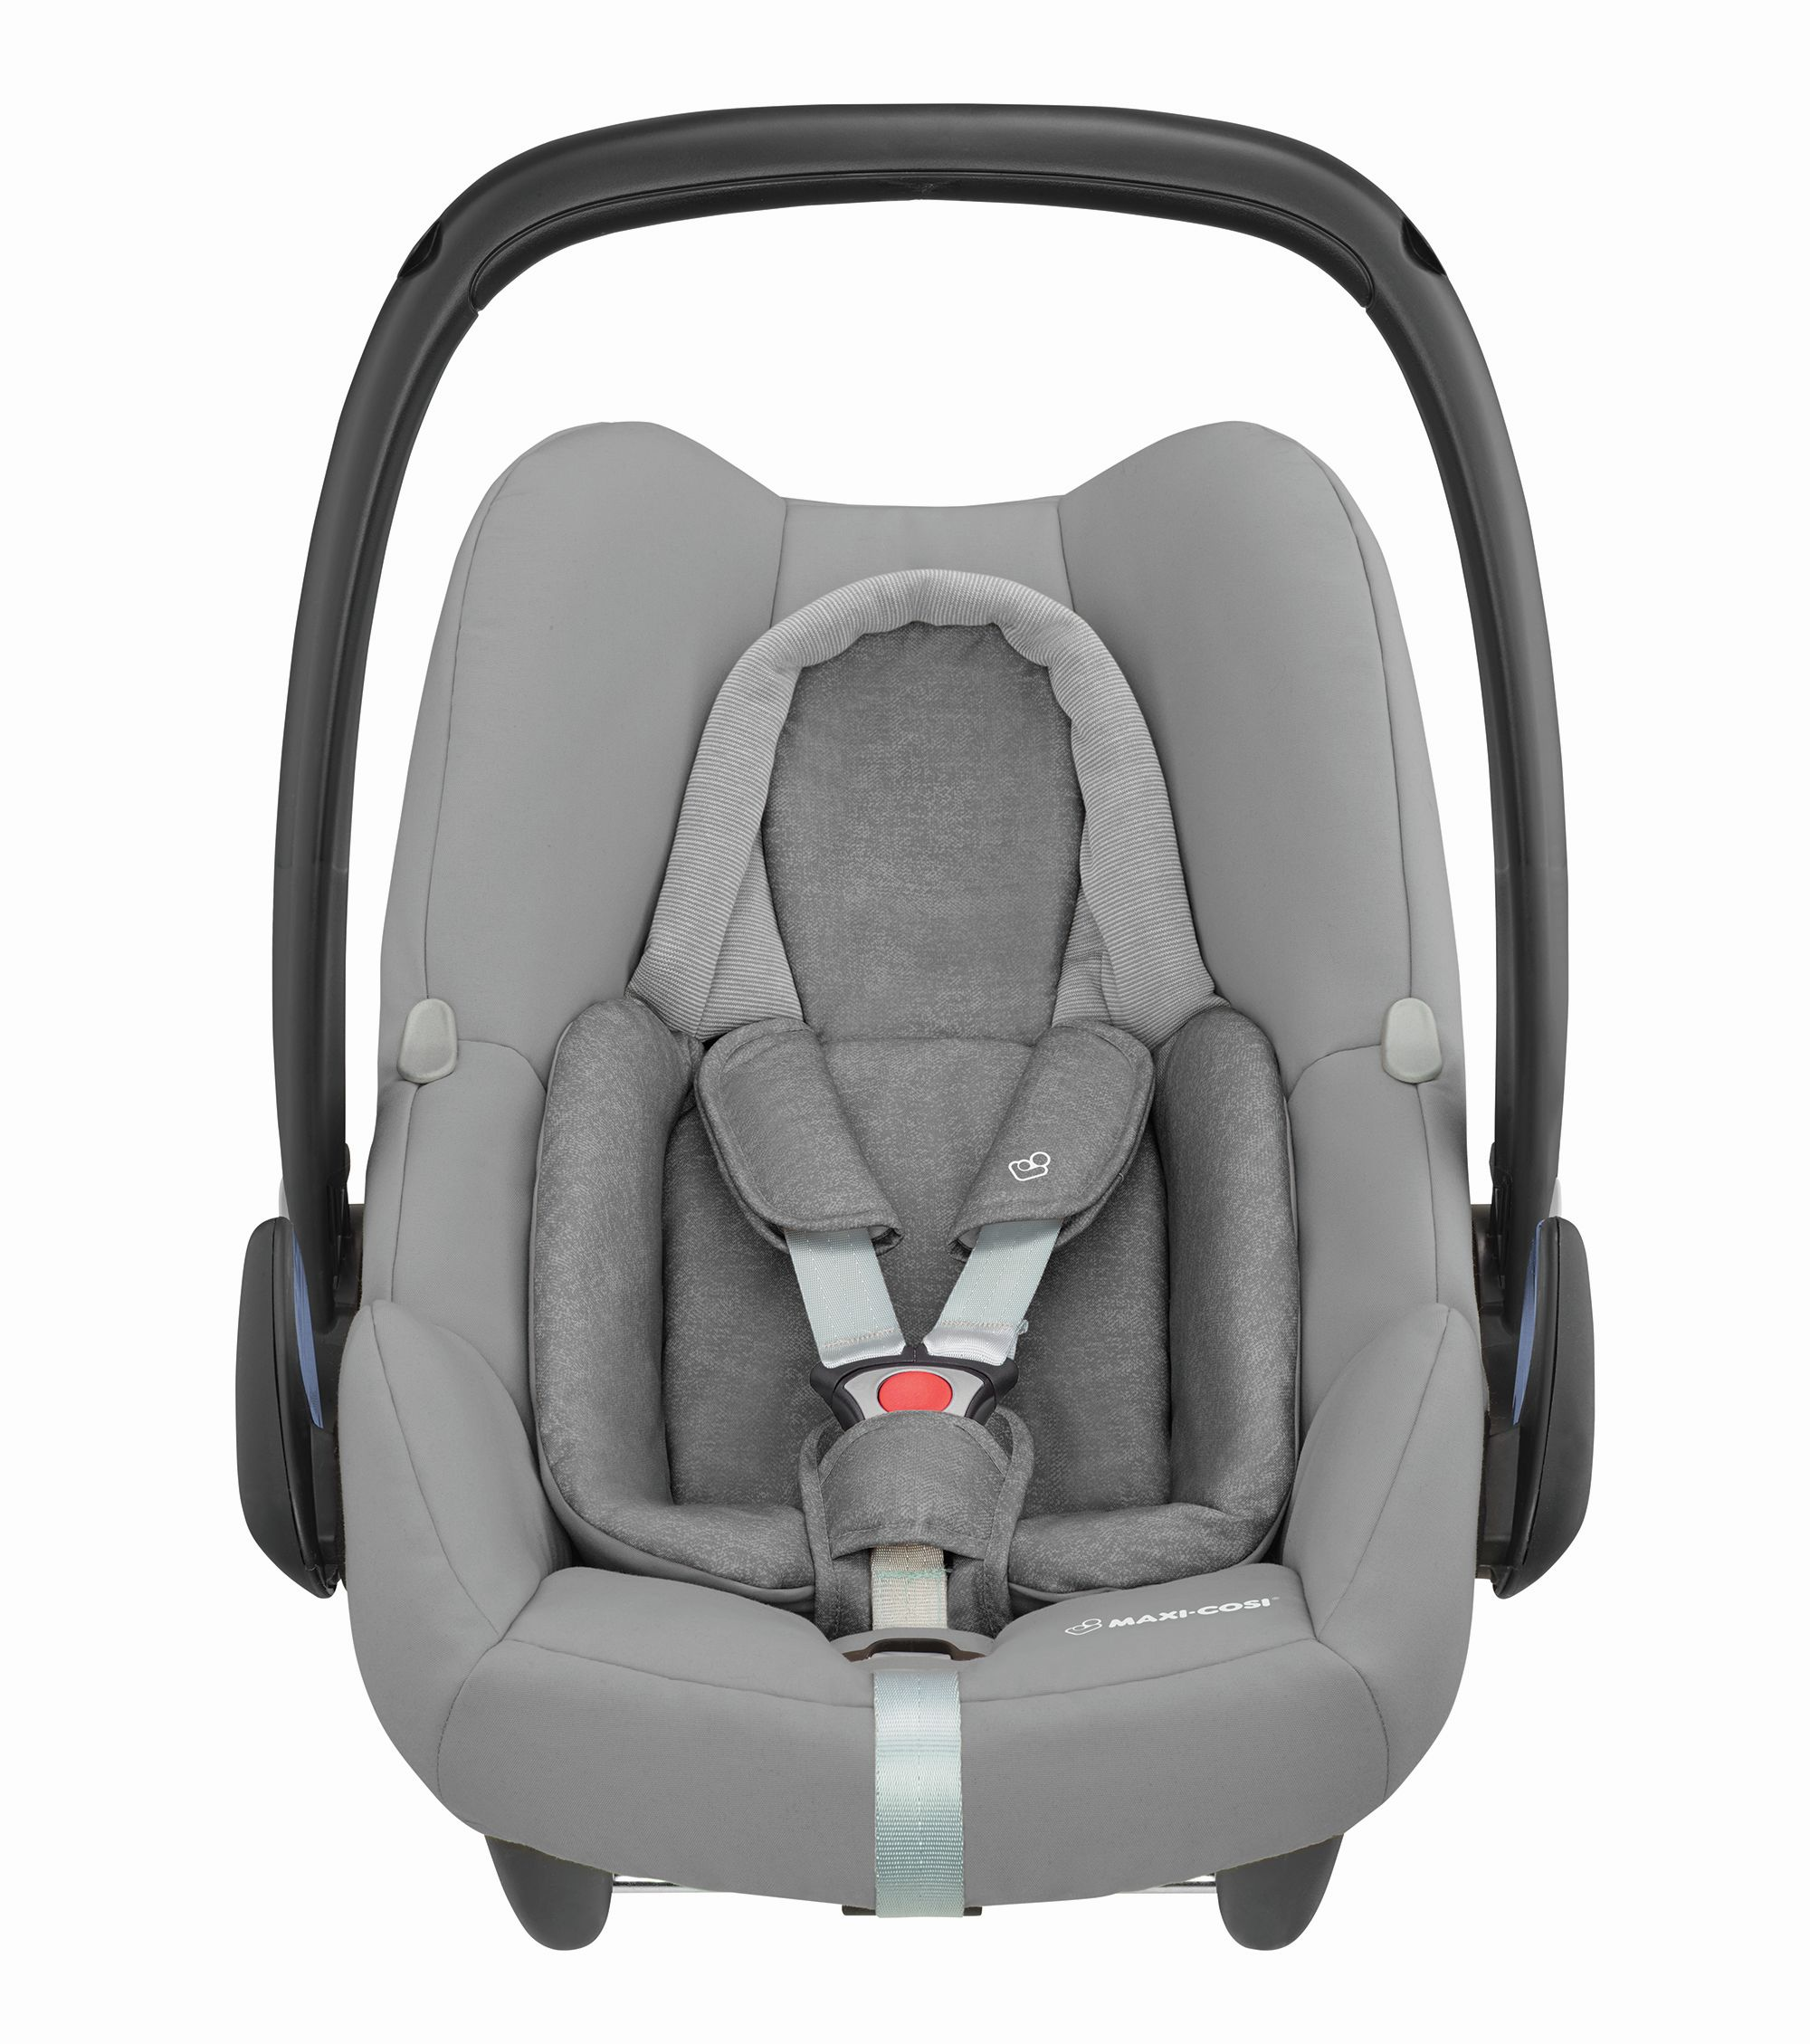 ROCK By Maxi Cosi Cosis Rock Offering A Safe Haven For Your Baby In Cosy Environment The Is New I Size Car Seat